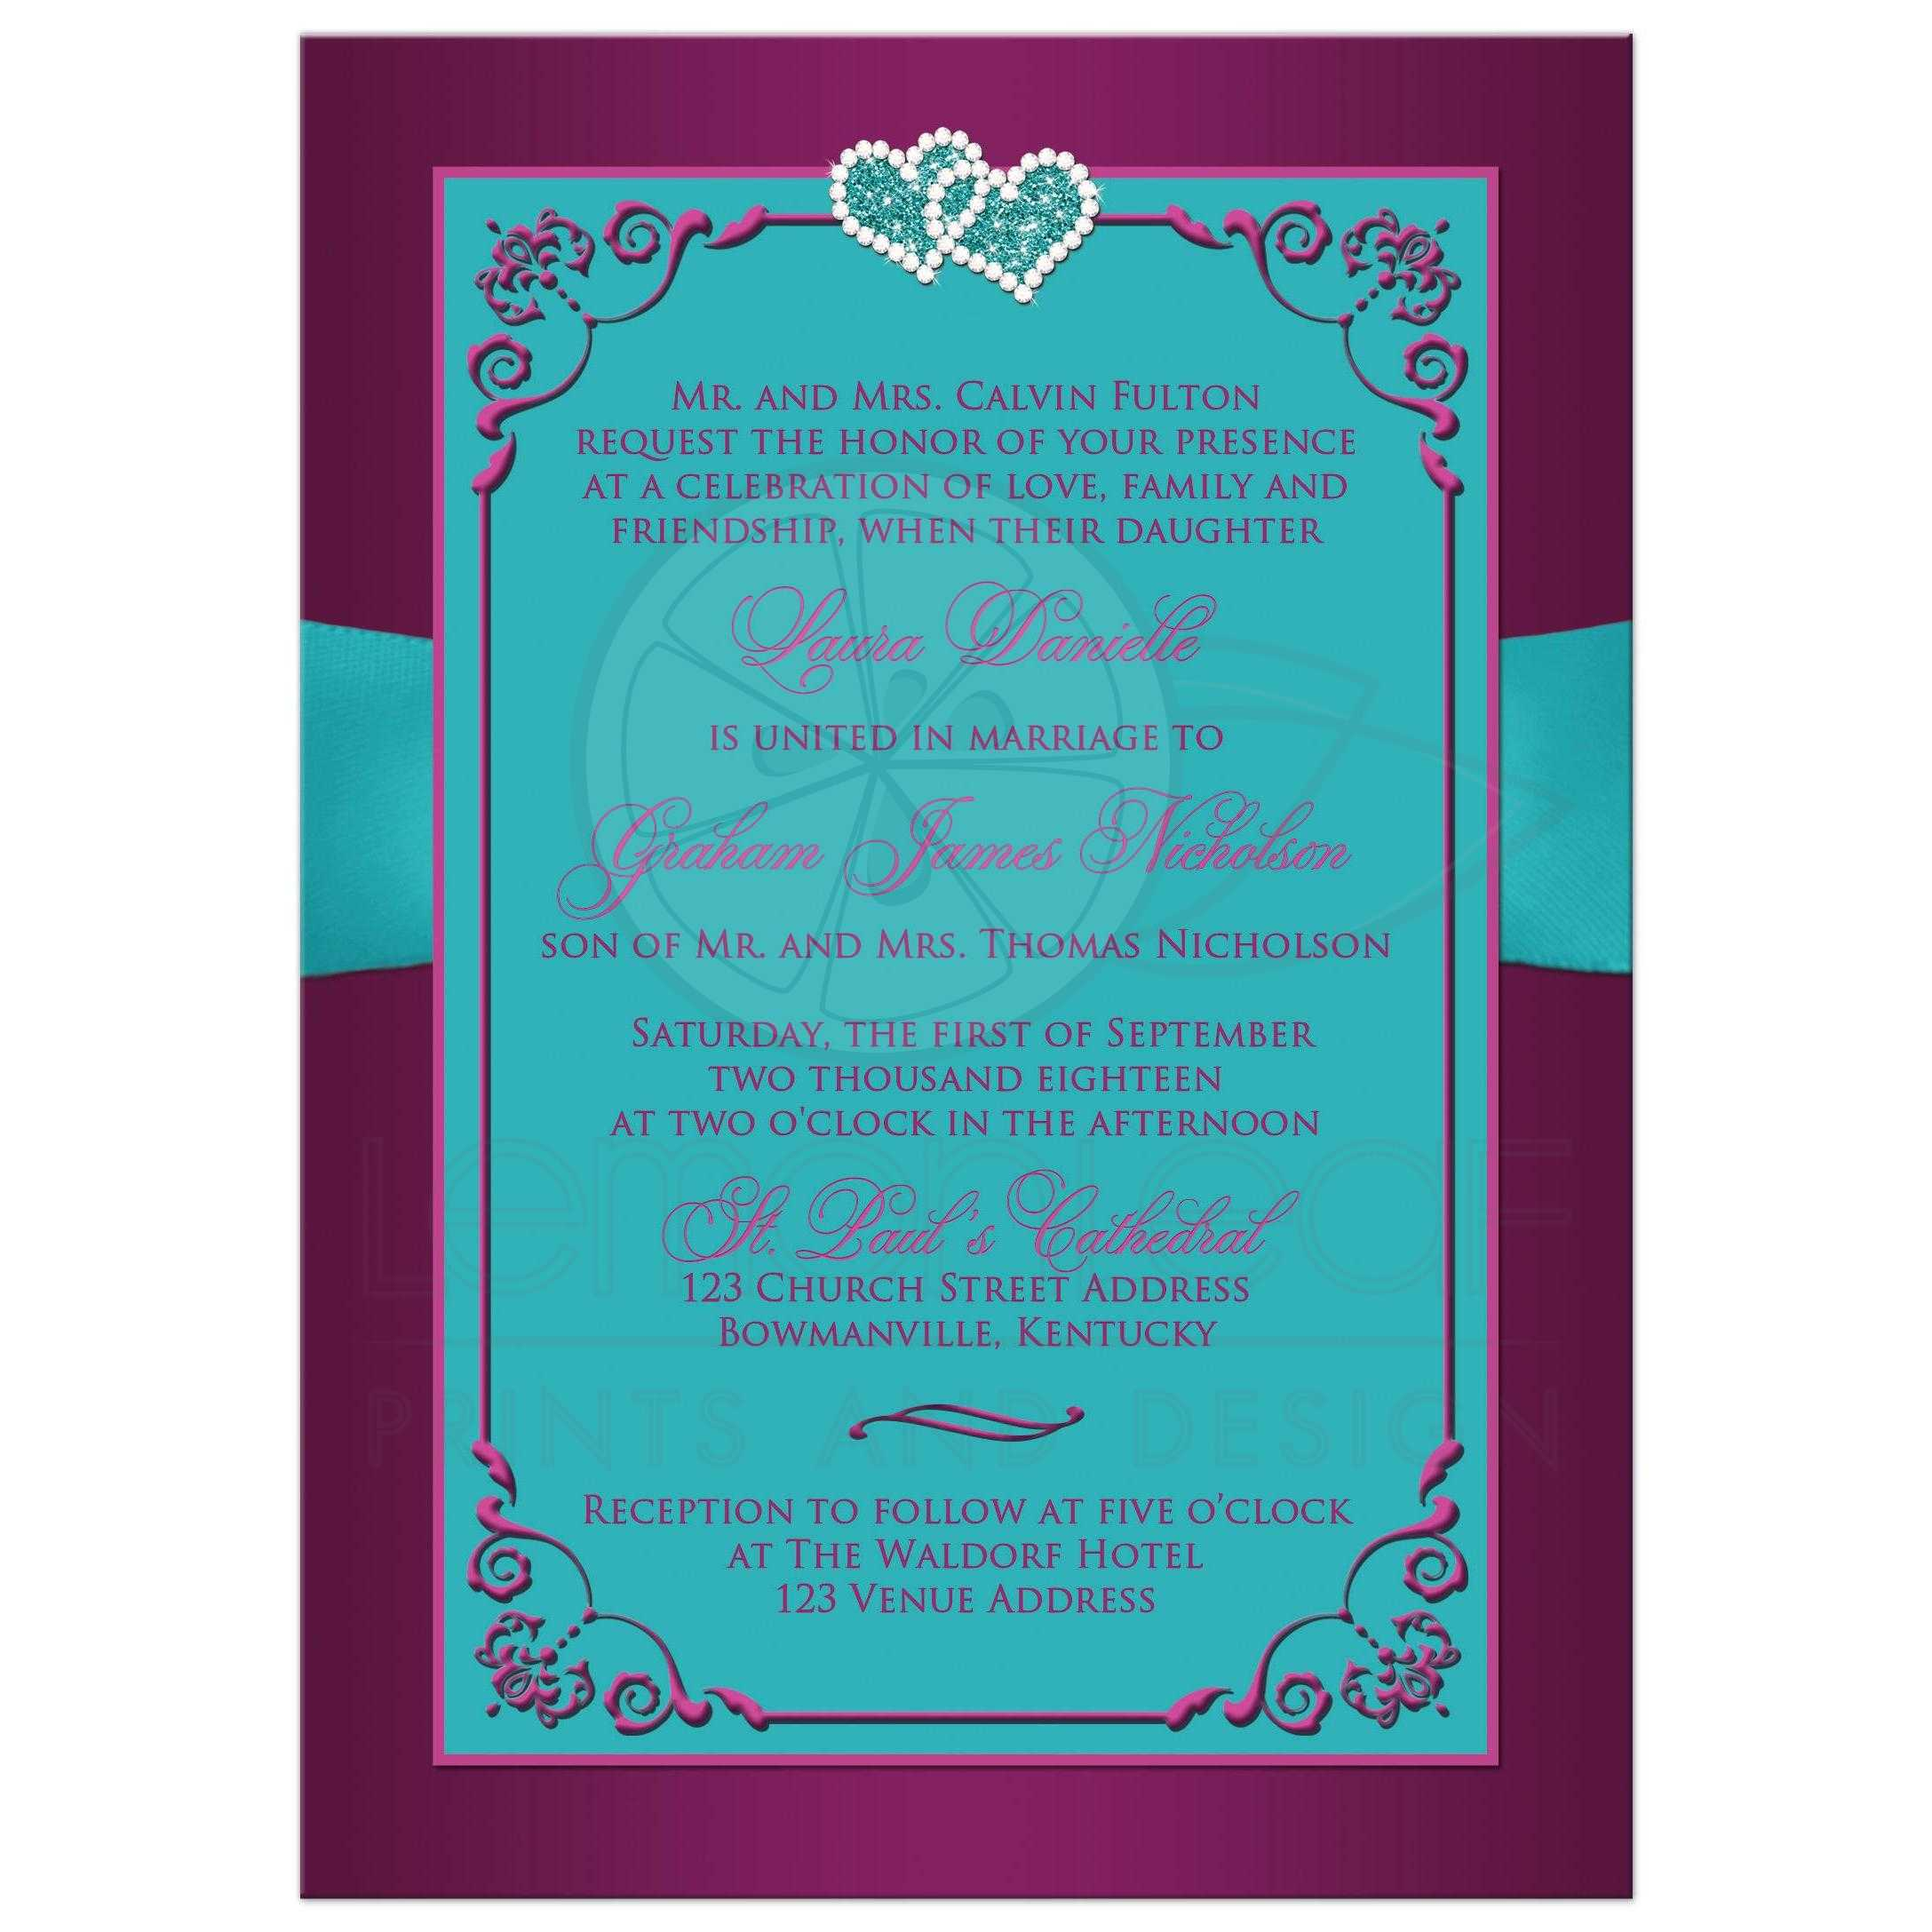 Wedding Invitation Teal Plum Magenta Floral Printed